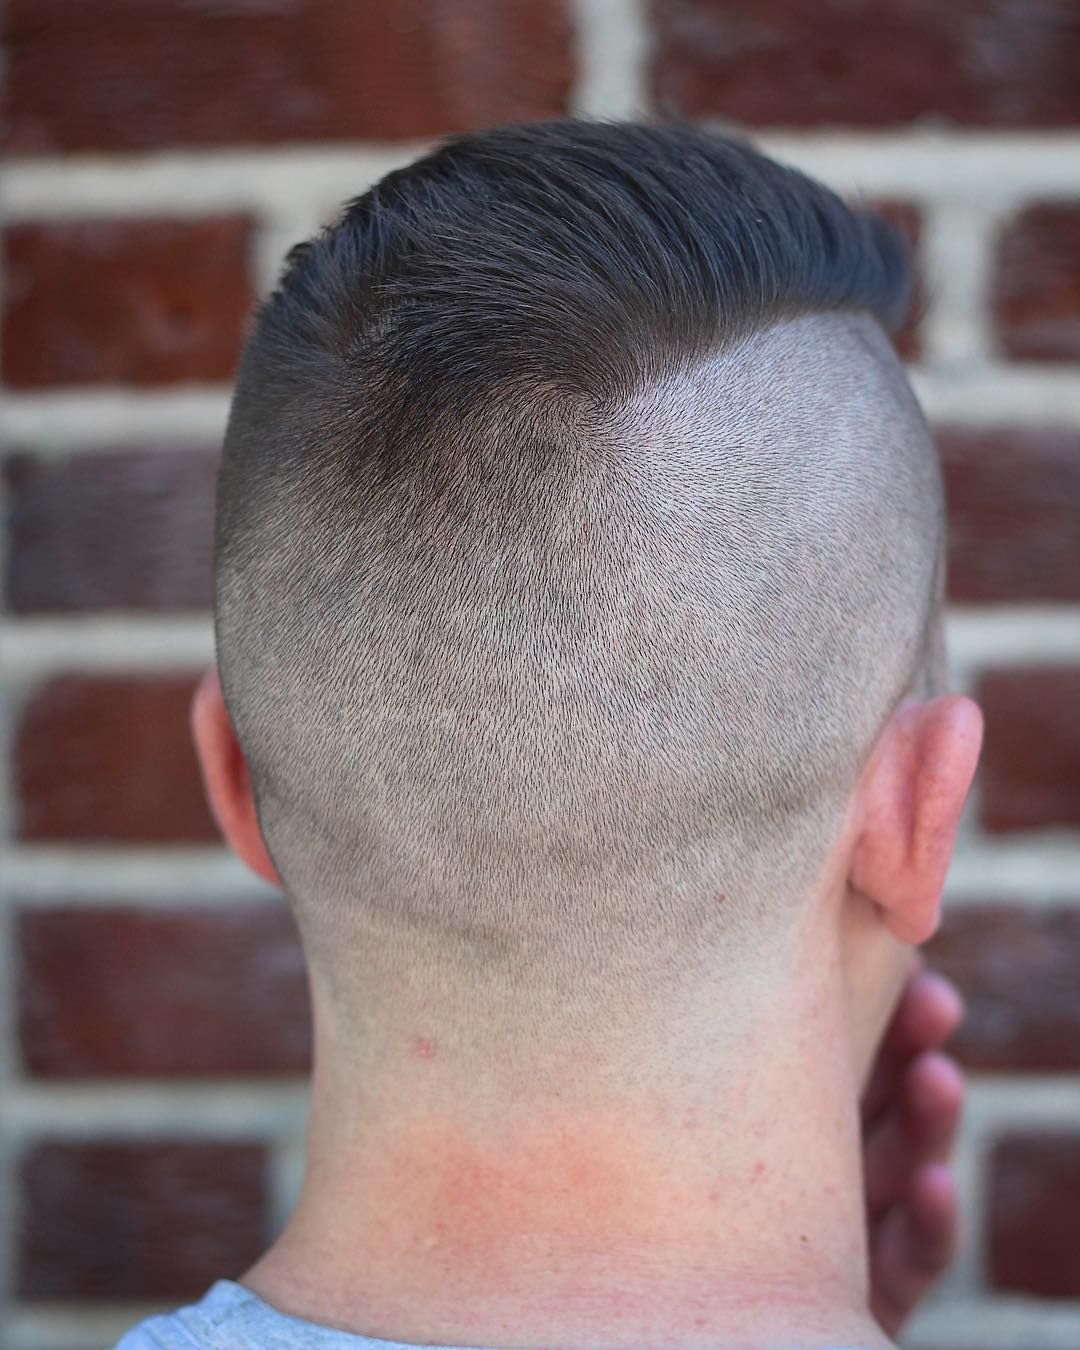 Diy haircut men comb over haircuts  hair styles  pinterest  haircuts undercut